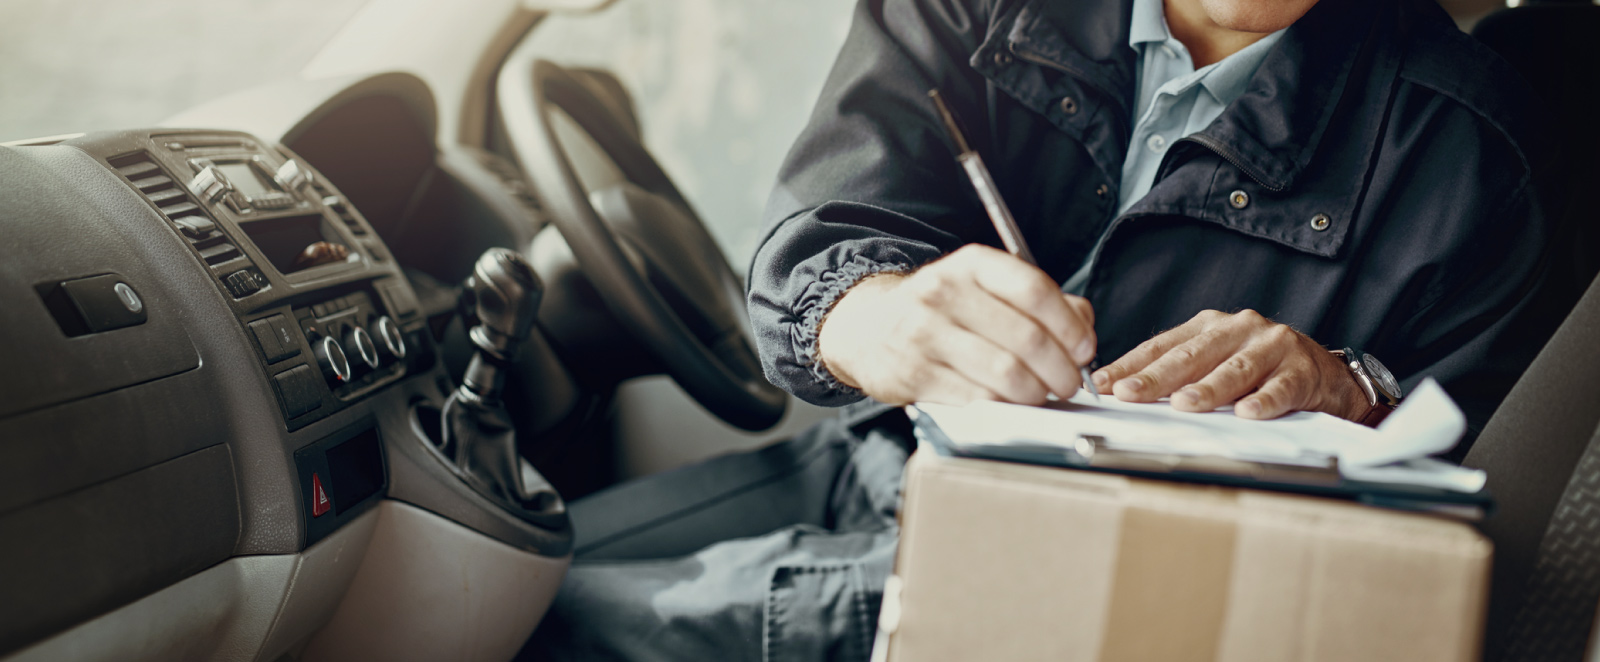 A man doing paperwork in a commercial vehicle